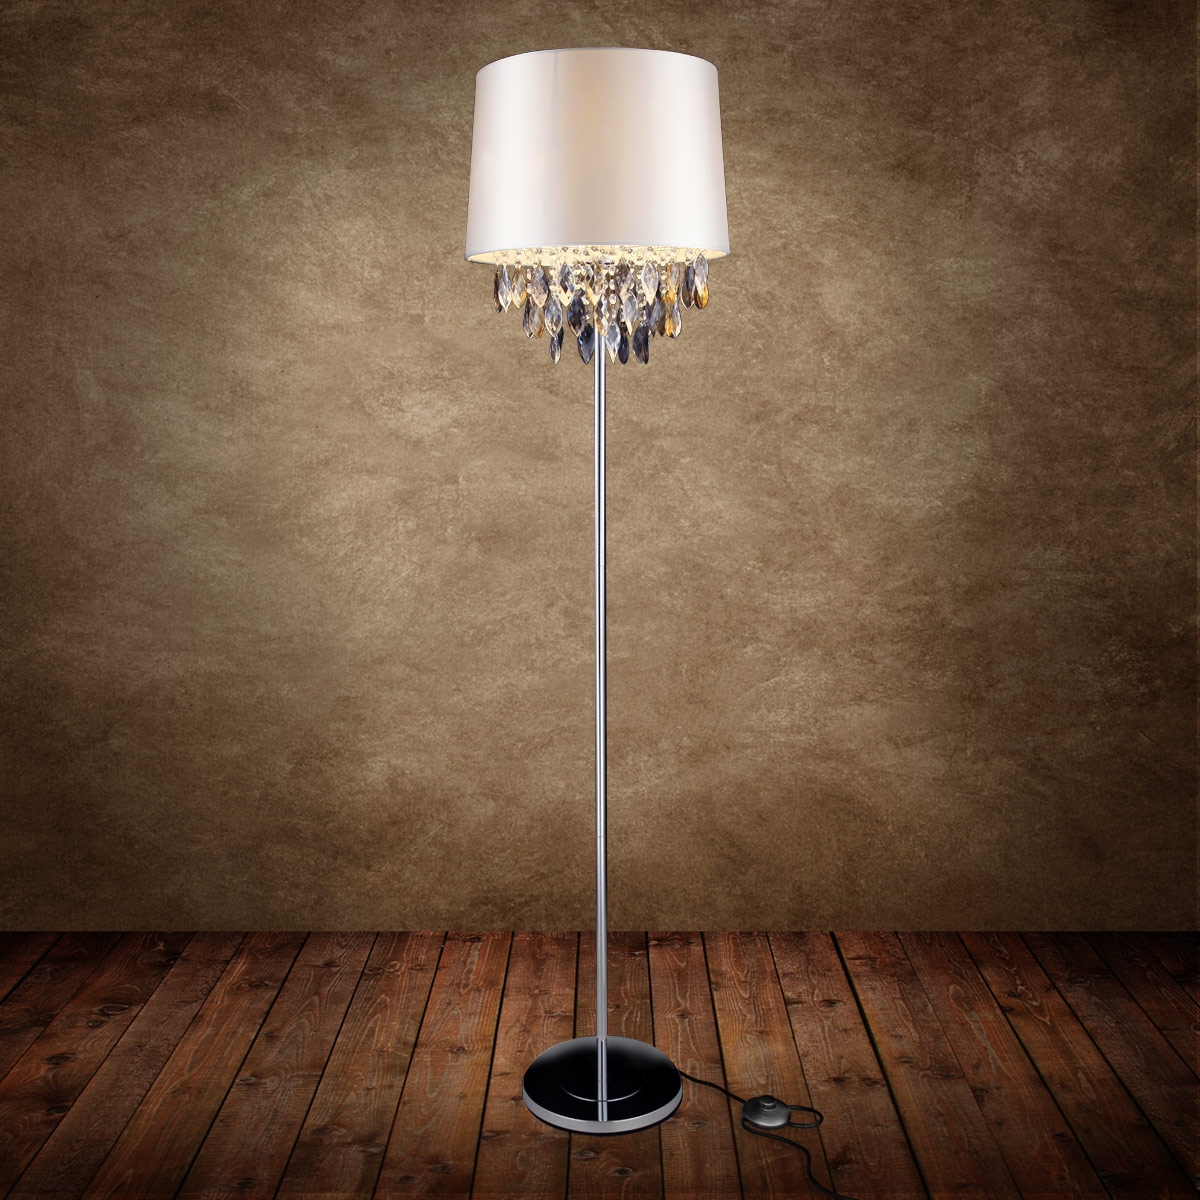 [Lux. Pro] ® Design Floor Lamp Floor Lamp Living Room Lamp ...